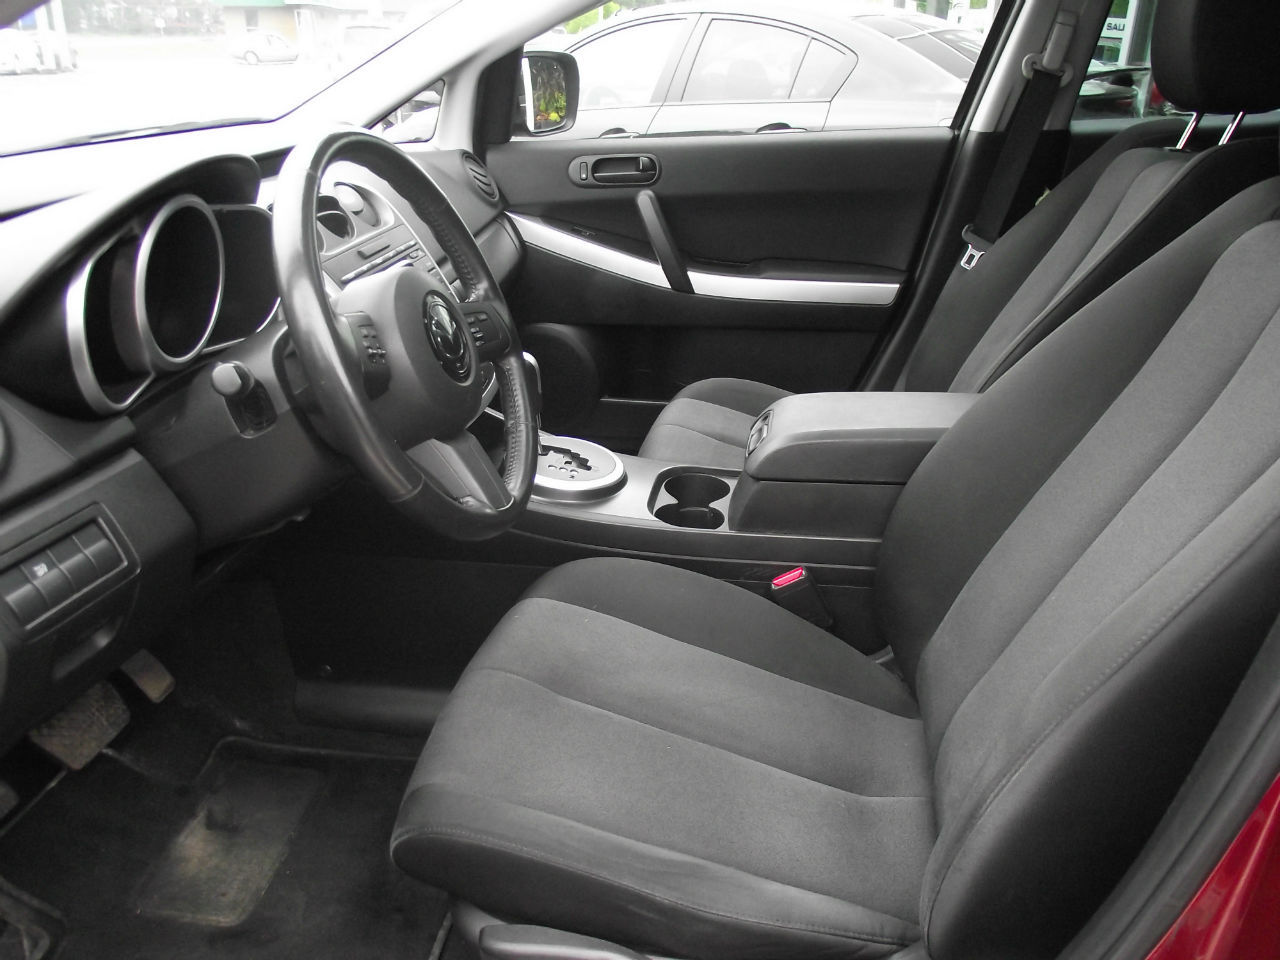 New Mazda Cx 3 Kent >> Used 2008 Mazda CX-7 in New Germany - Used inventory - Lake View Auto in New Germany, Nova Scotia